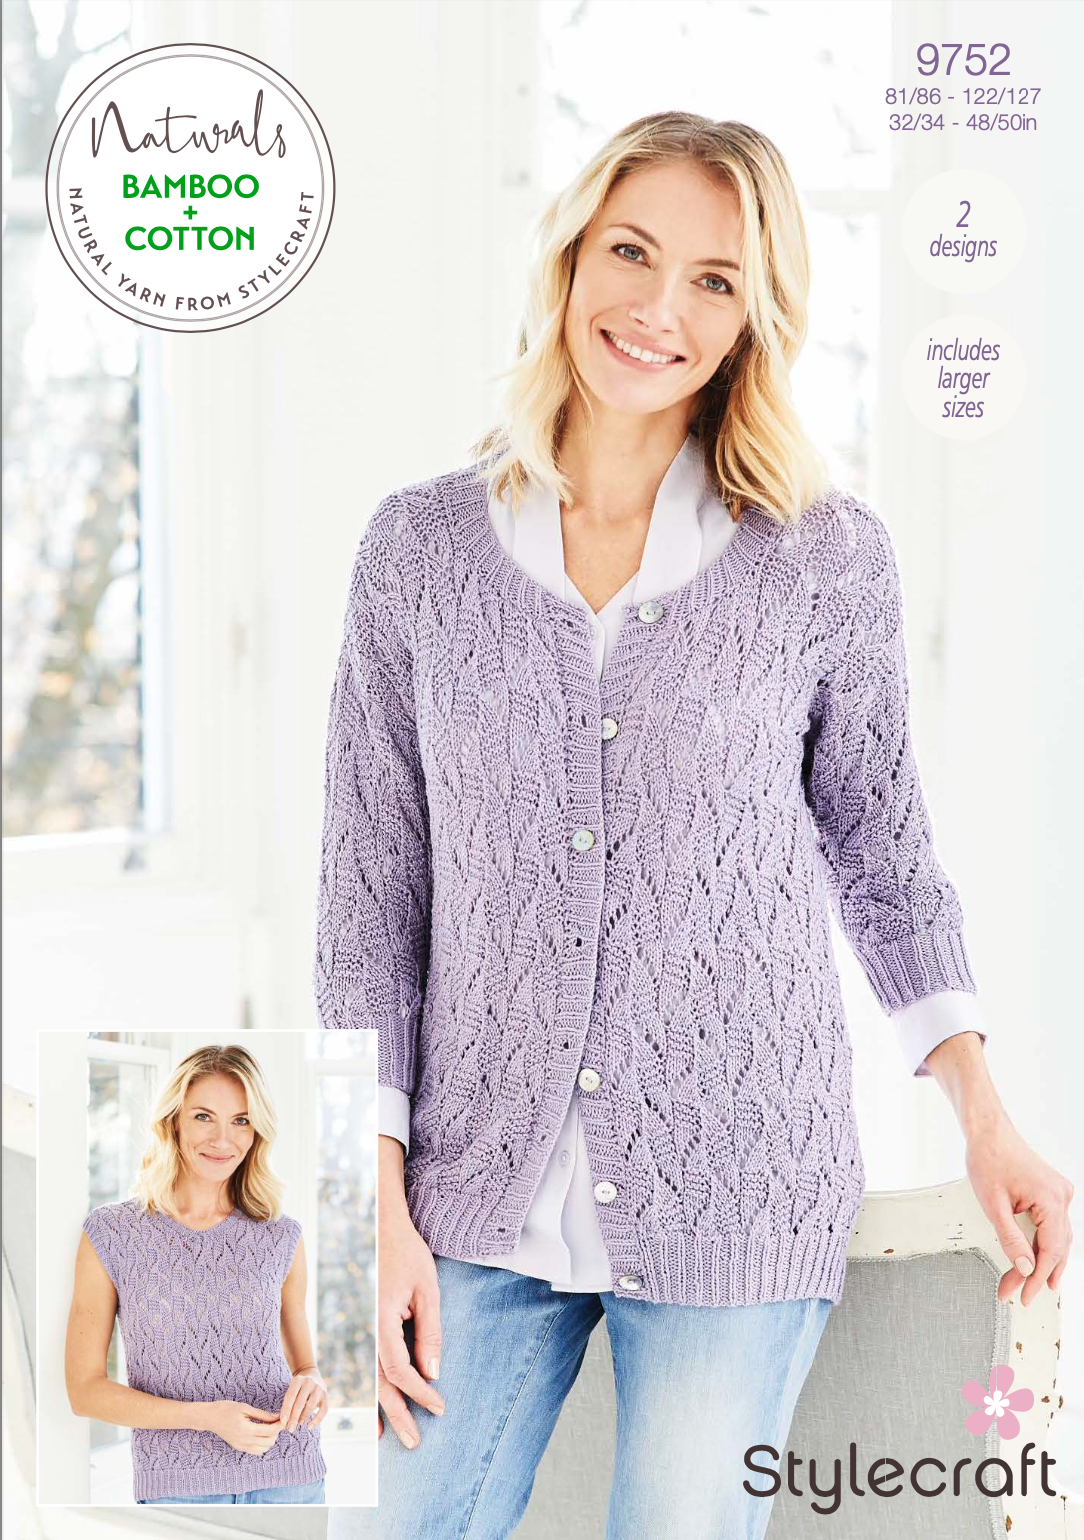 Stylecraft Pattern Naturals Bamboo+Cotton 9752 (download) product image